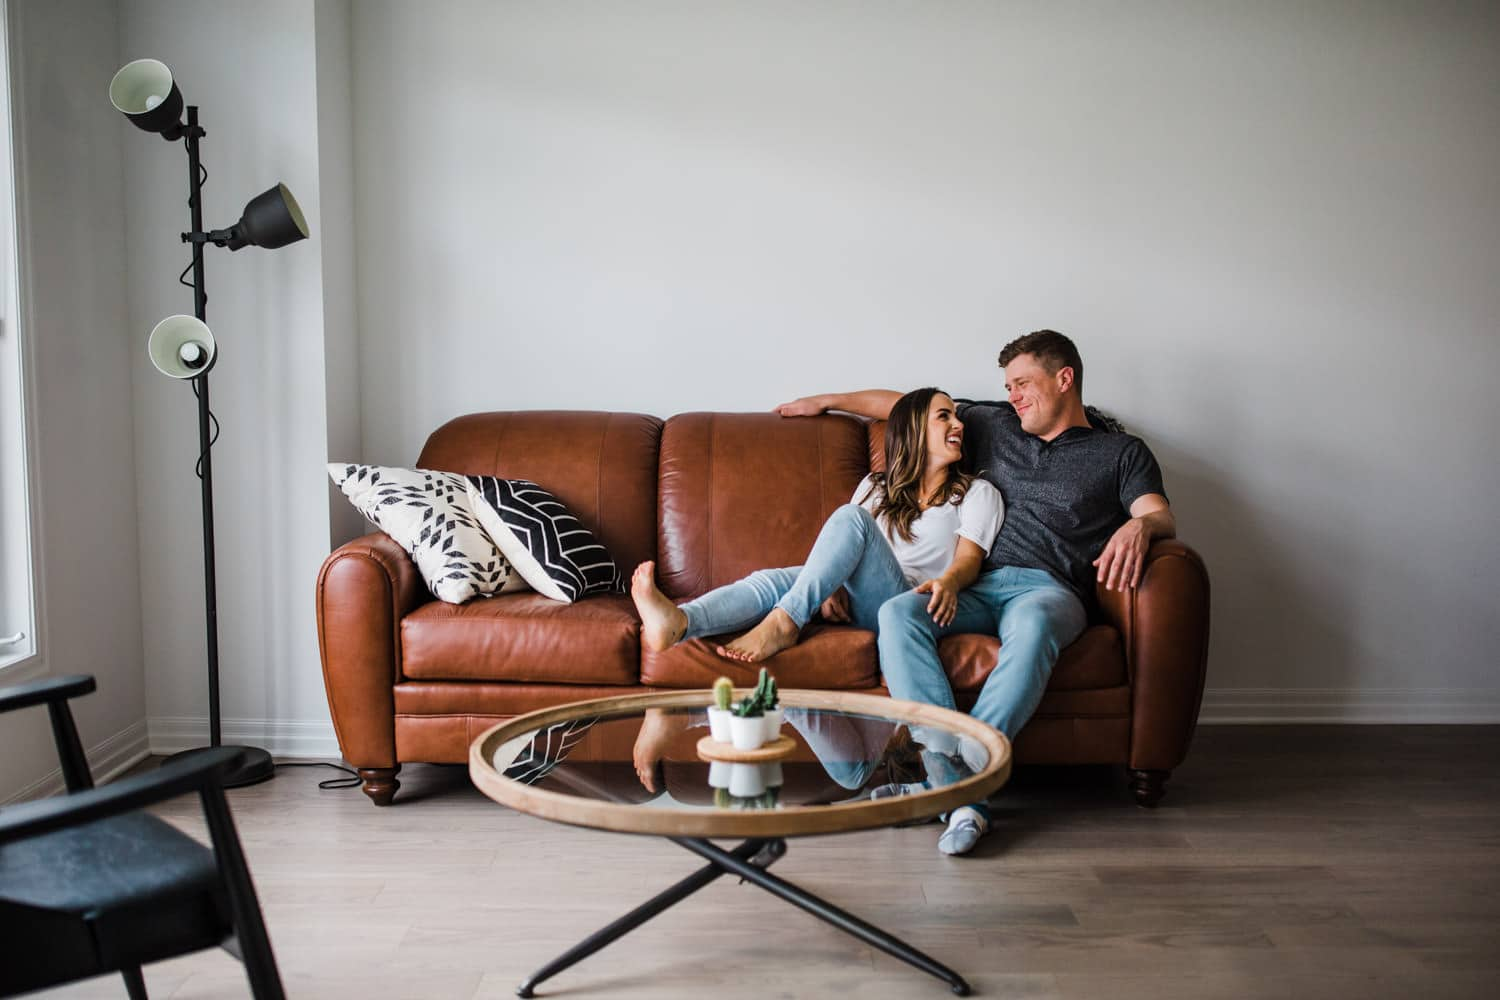 couple hang out on leather couch together - ottawa in home engagement